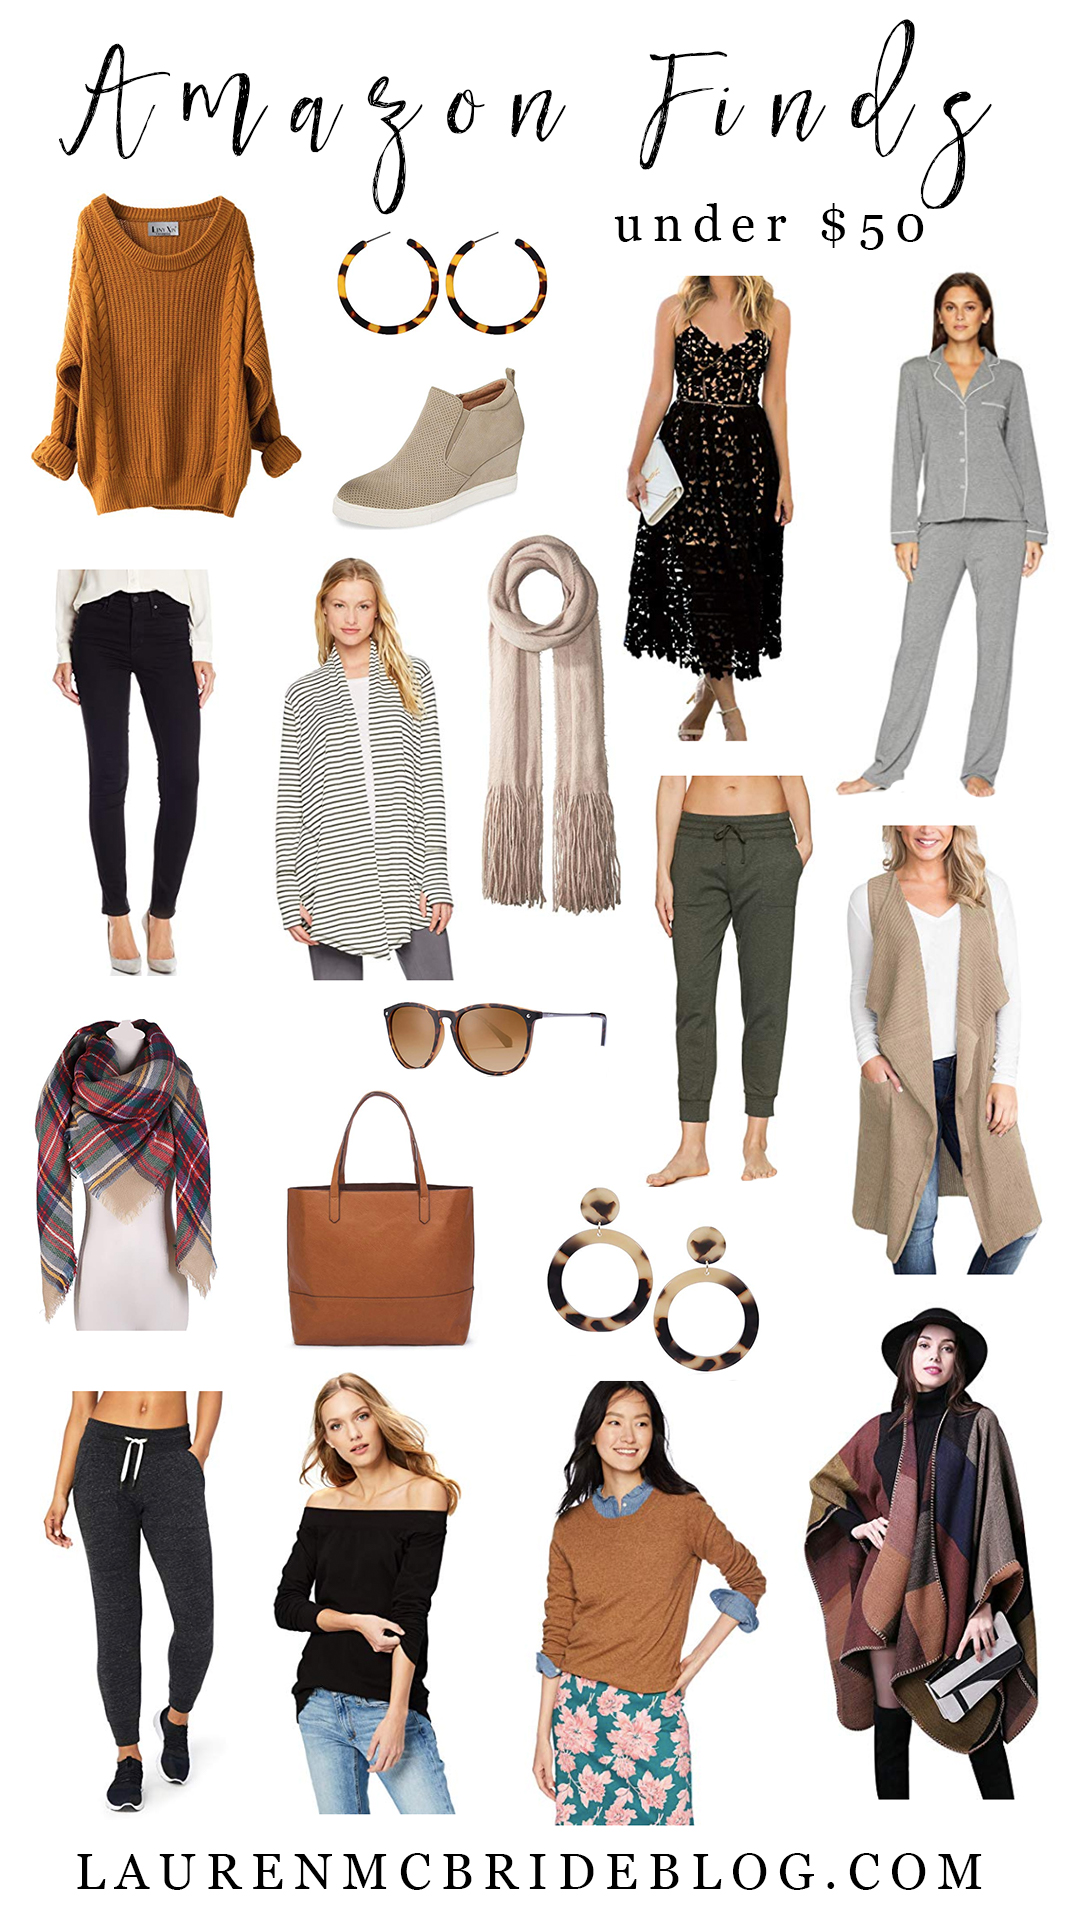 Connecticut life and style blogger Lauren McBride shares her October Amazon Finds Under $50 including designer dupes and fall essentials.